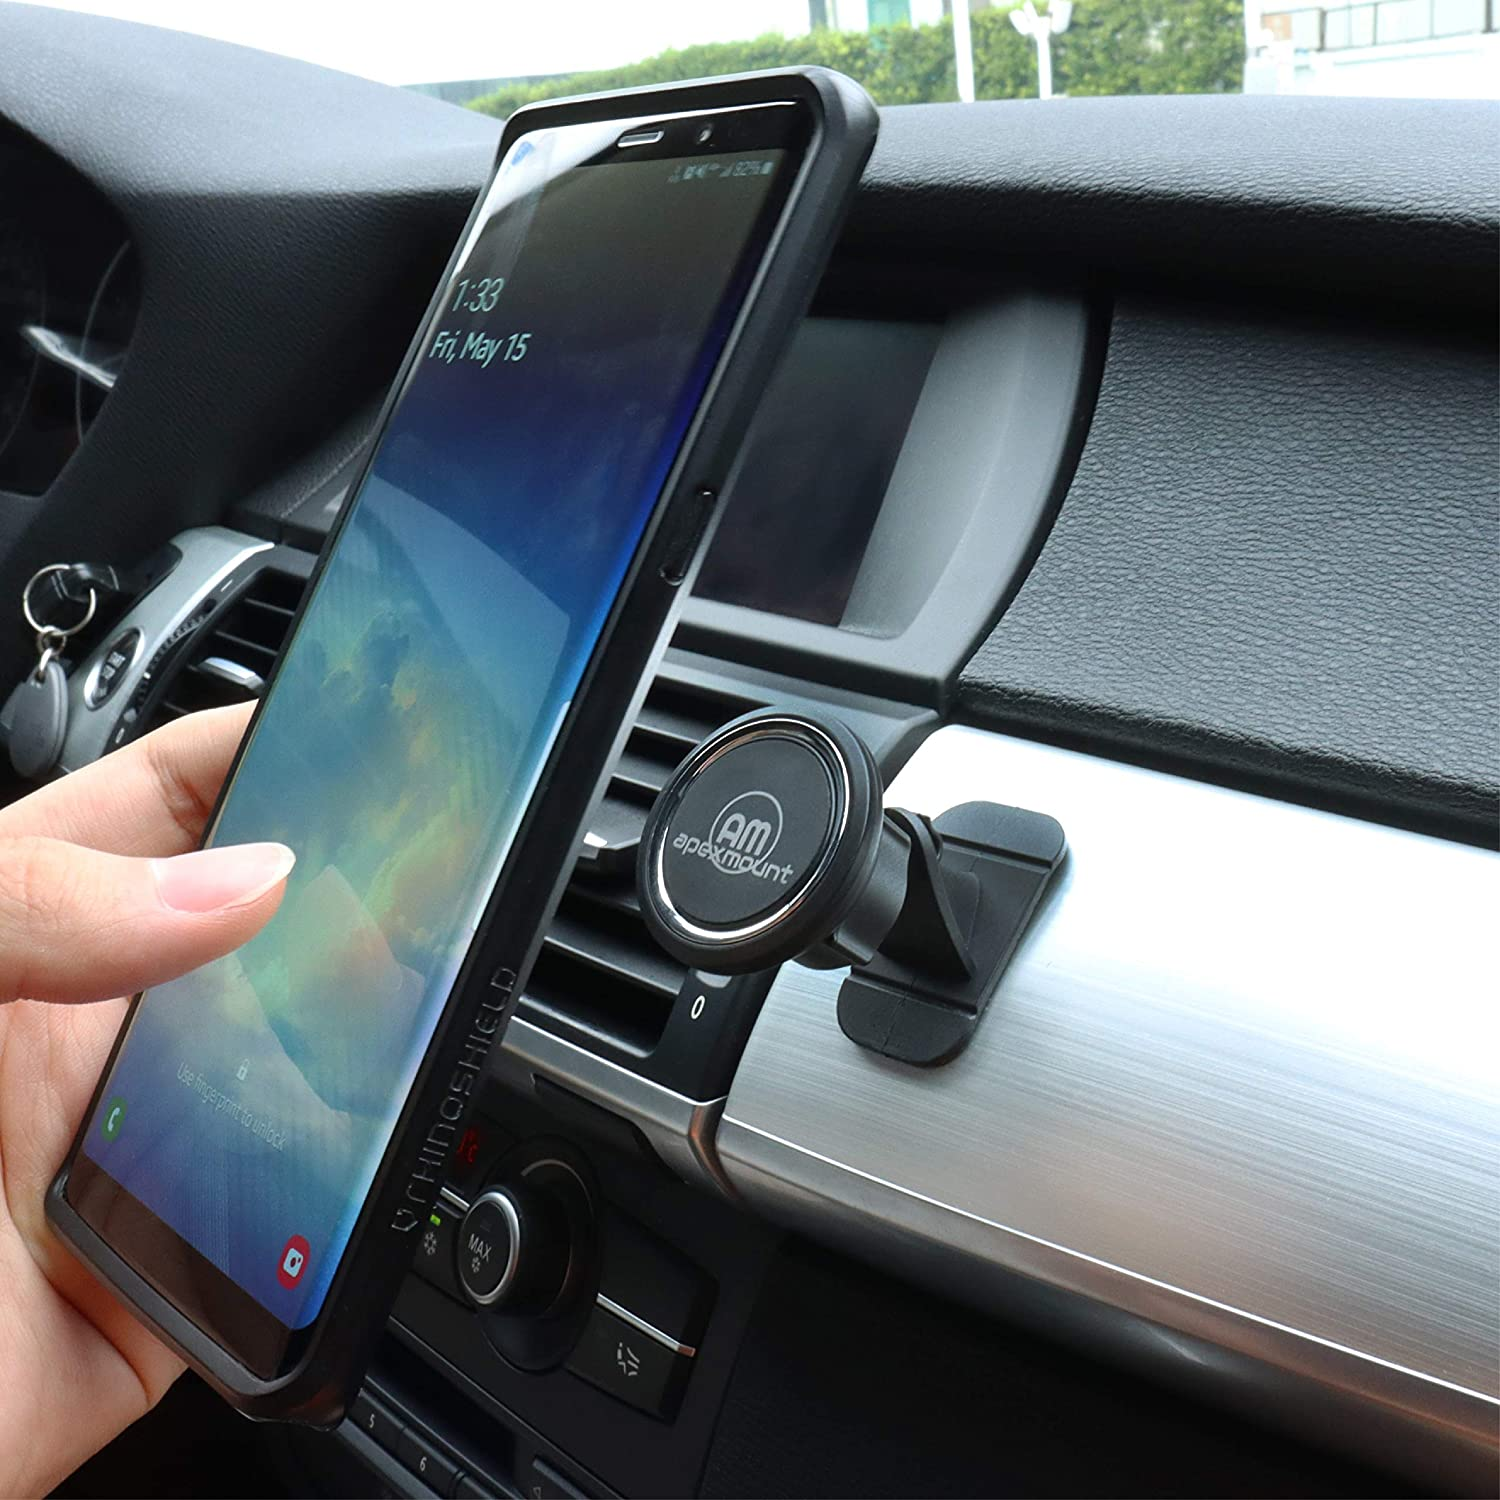 etc. Nokia Huawei Compatible with iPhones Sony Moto Xiaomi Magnetic Stick Stand Mount APEXMOUNT Car Phone Holder Samsung Galaxy//Note HTC LG Hands-Free and 360/° Rotation Design Chrome